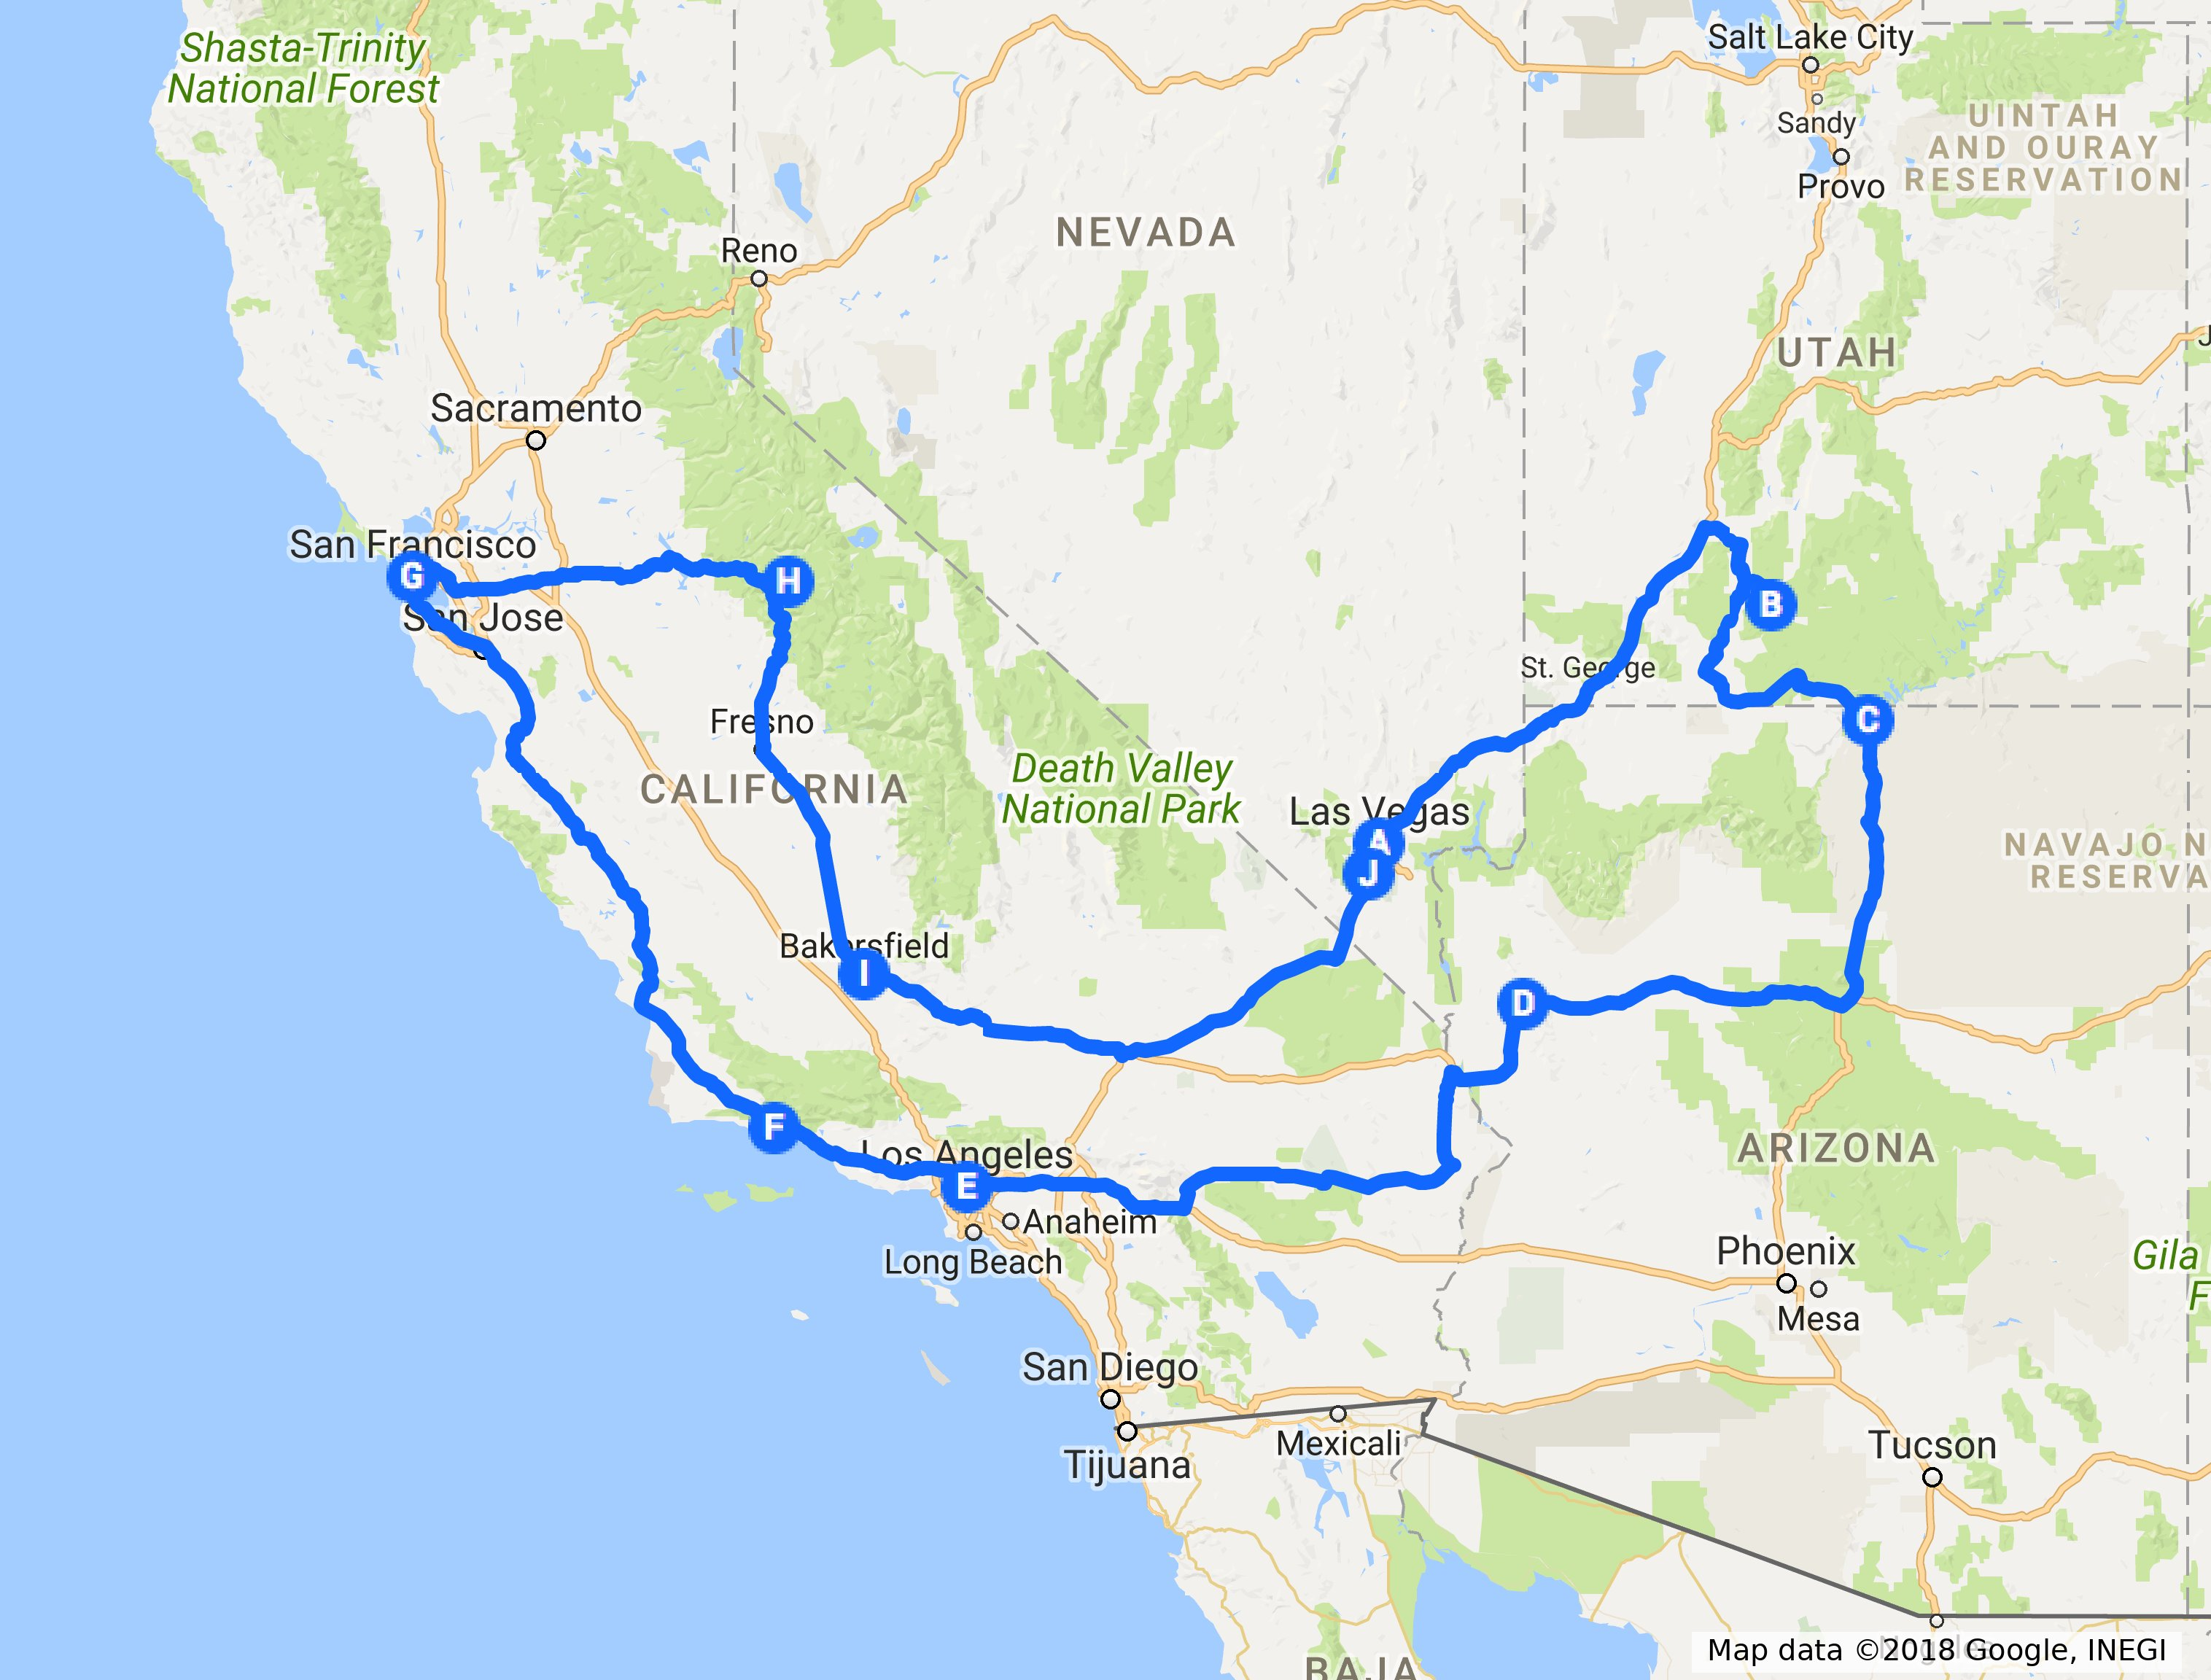 route road trip west amerika 2018